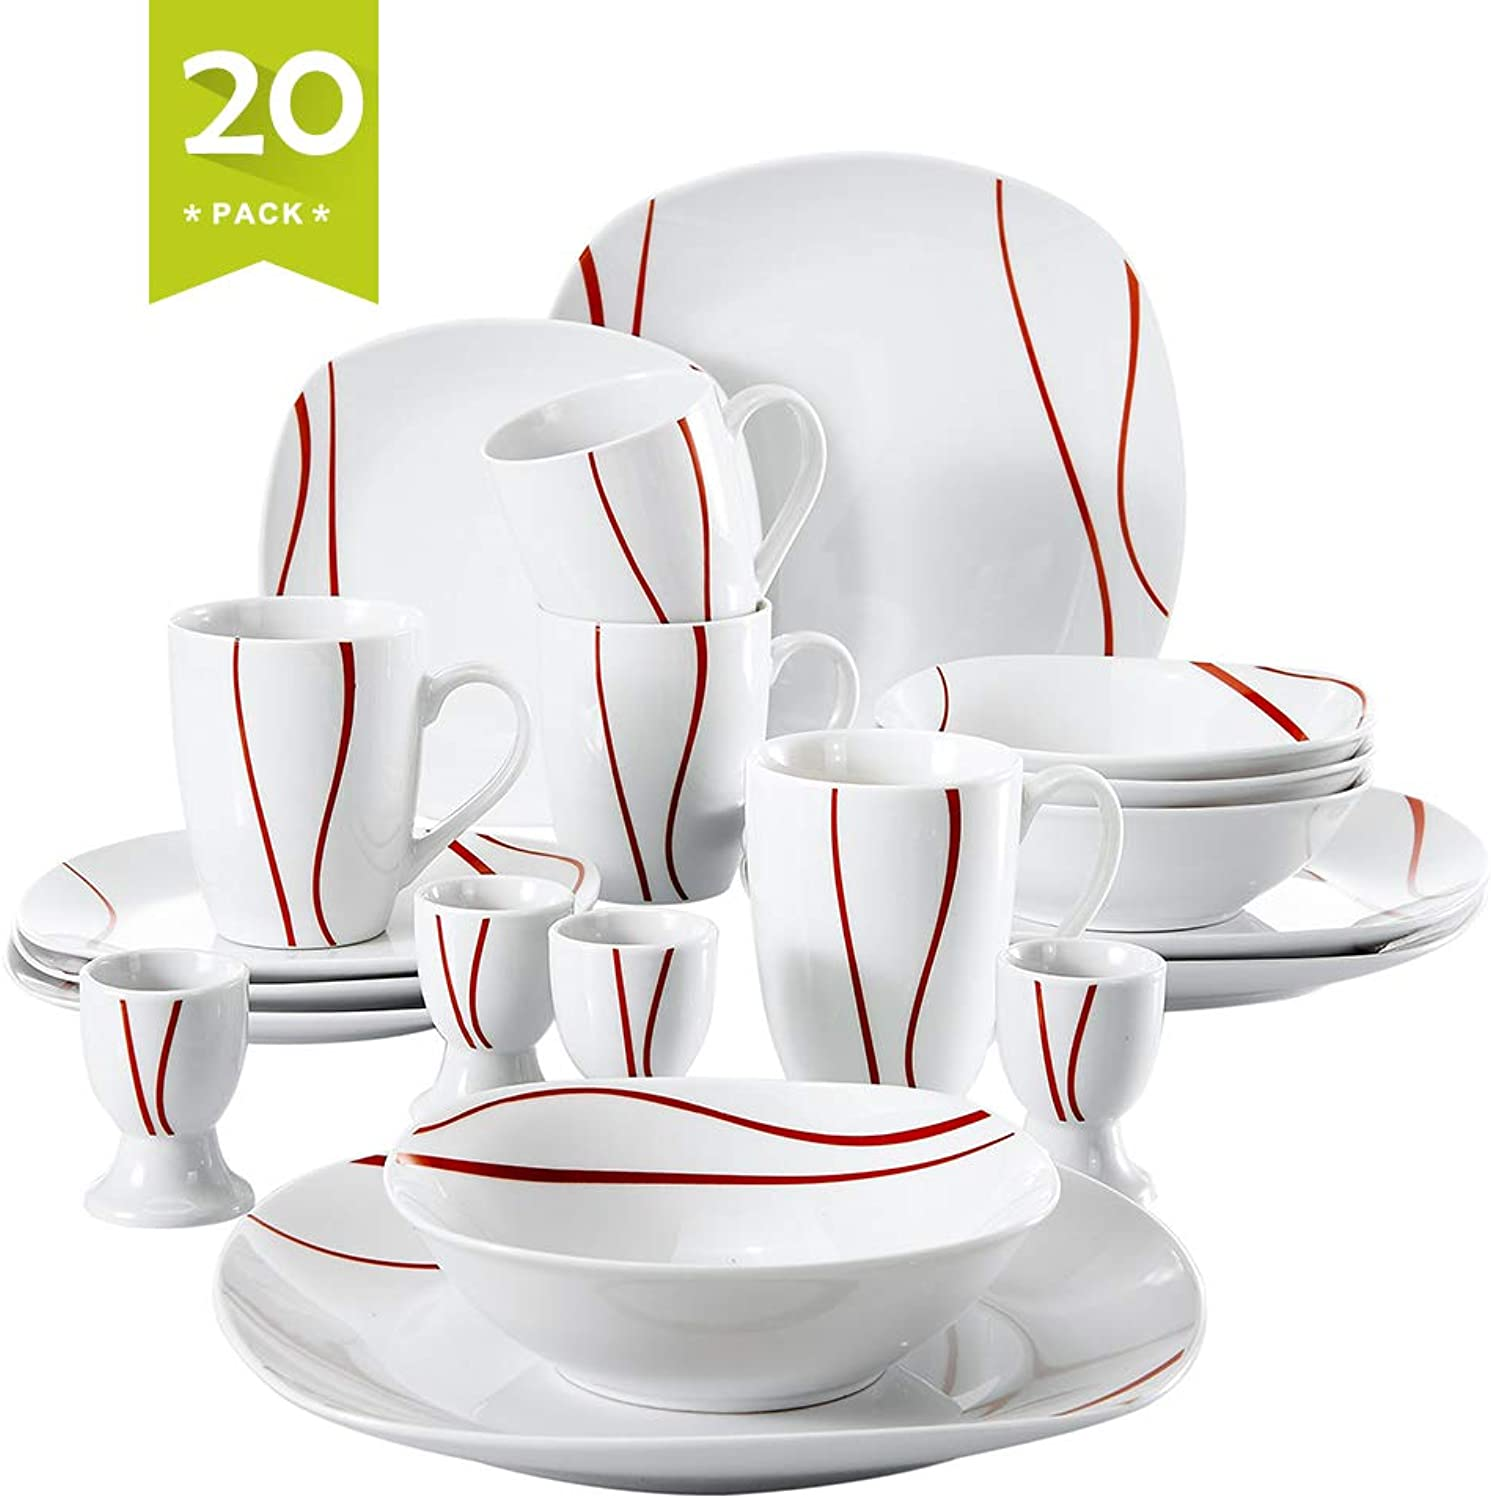 Malacasa 20-Piece Porcelain Dinnerware Set for 4 Person, Stoneware Dinner Set with Dinner Plates Soup Plates Dessert Plates Cups Saucers Service for 6, Ivory White, Series Felisa